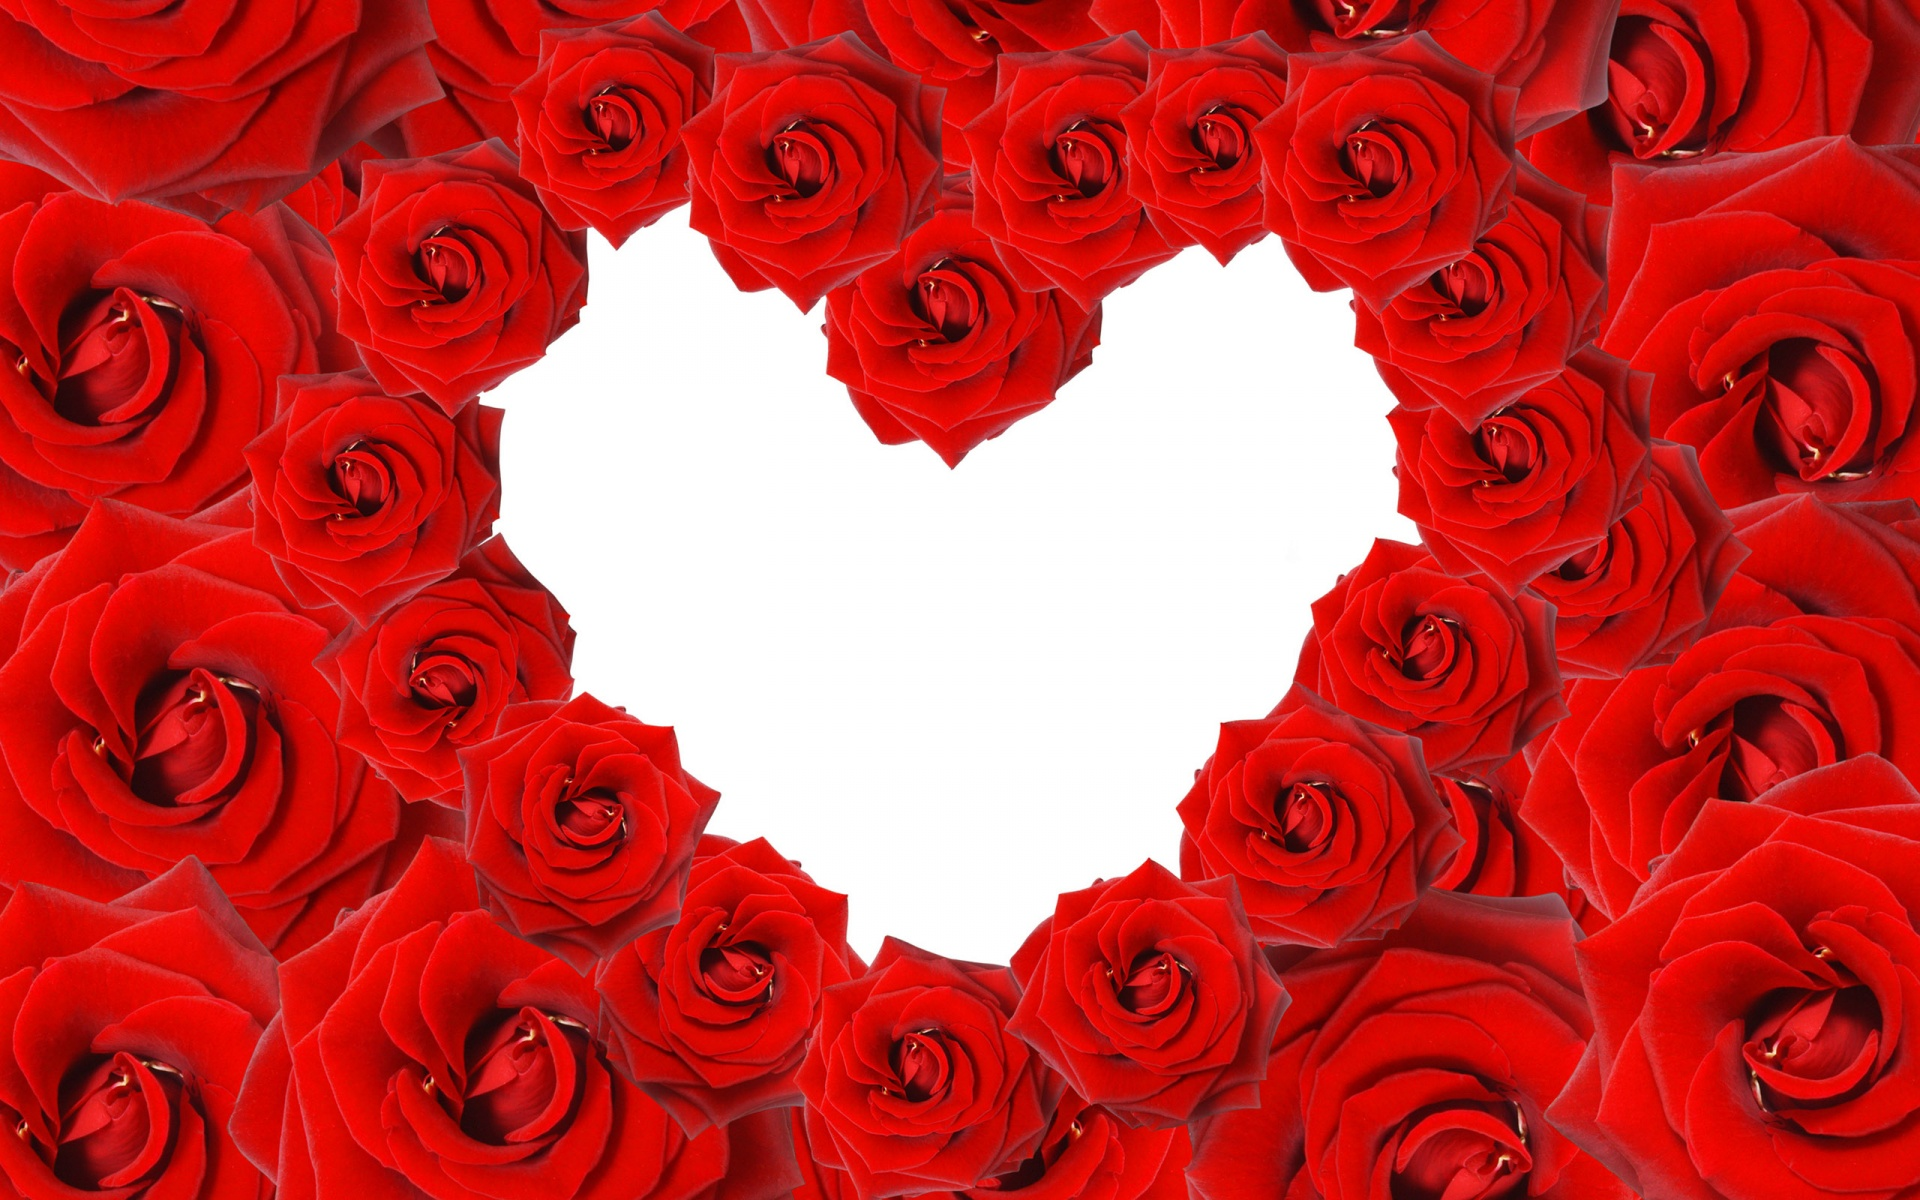 Love Heart Gallery Wallpaper : Red Roses & Love Heart Wallpapers in jpg format for free download